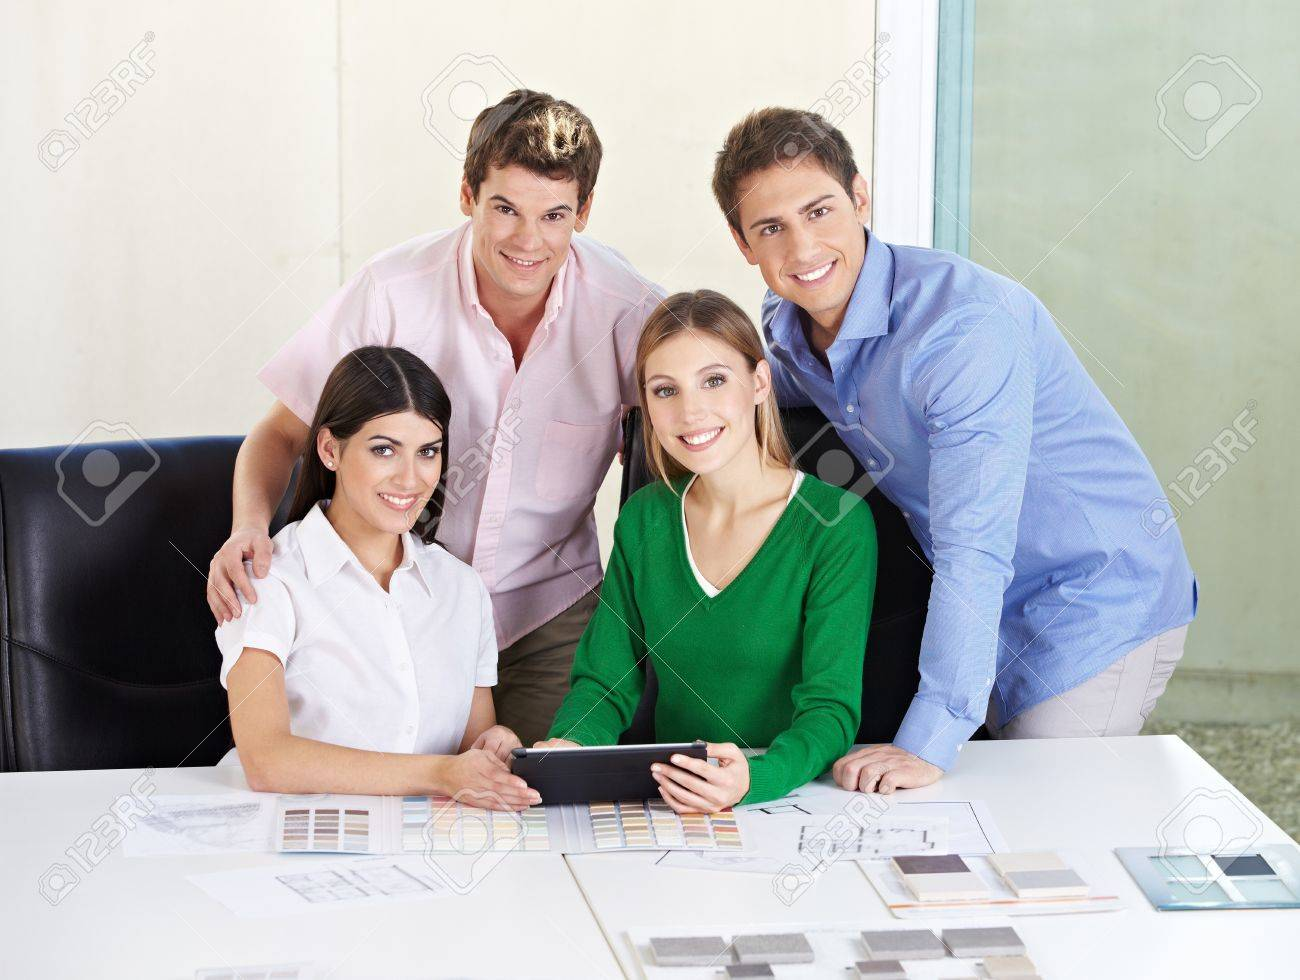 Smiling happy team of architects with tablet computer at desk Stock Photo - 15638059